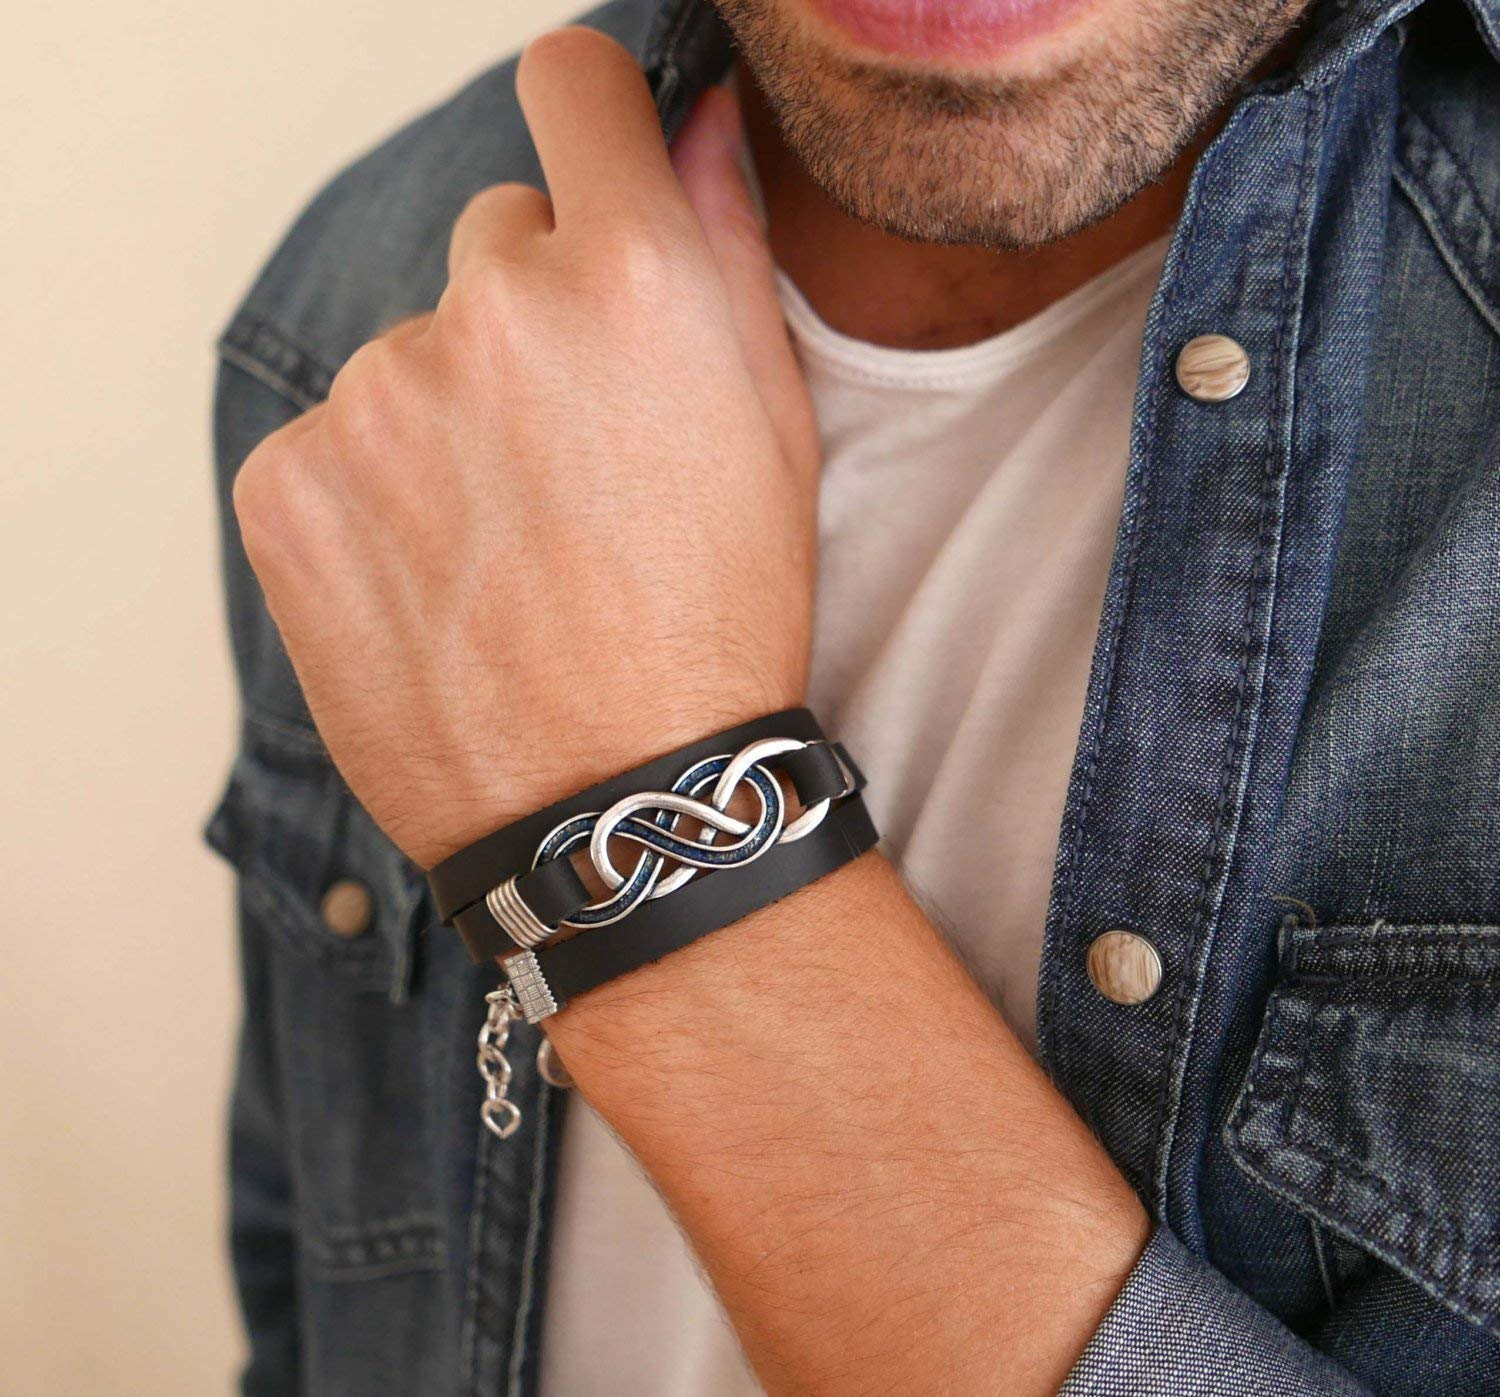 Cuff Bracelet For Men Handmade Cuff Black Genuine Leather Bracelet For Men Set With Silver Plated Infinity Pendant By Galis Jewelry Infinity Bracelet For Men